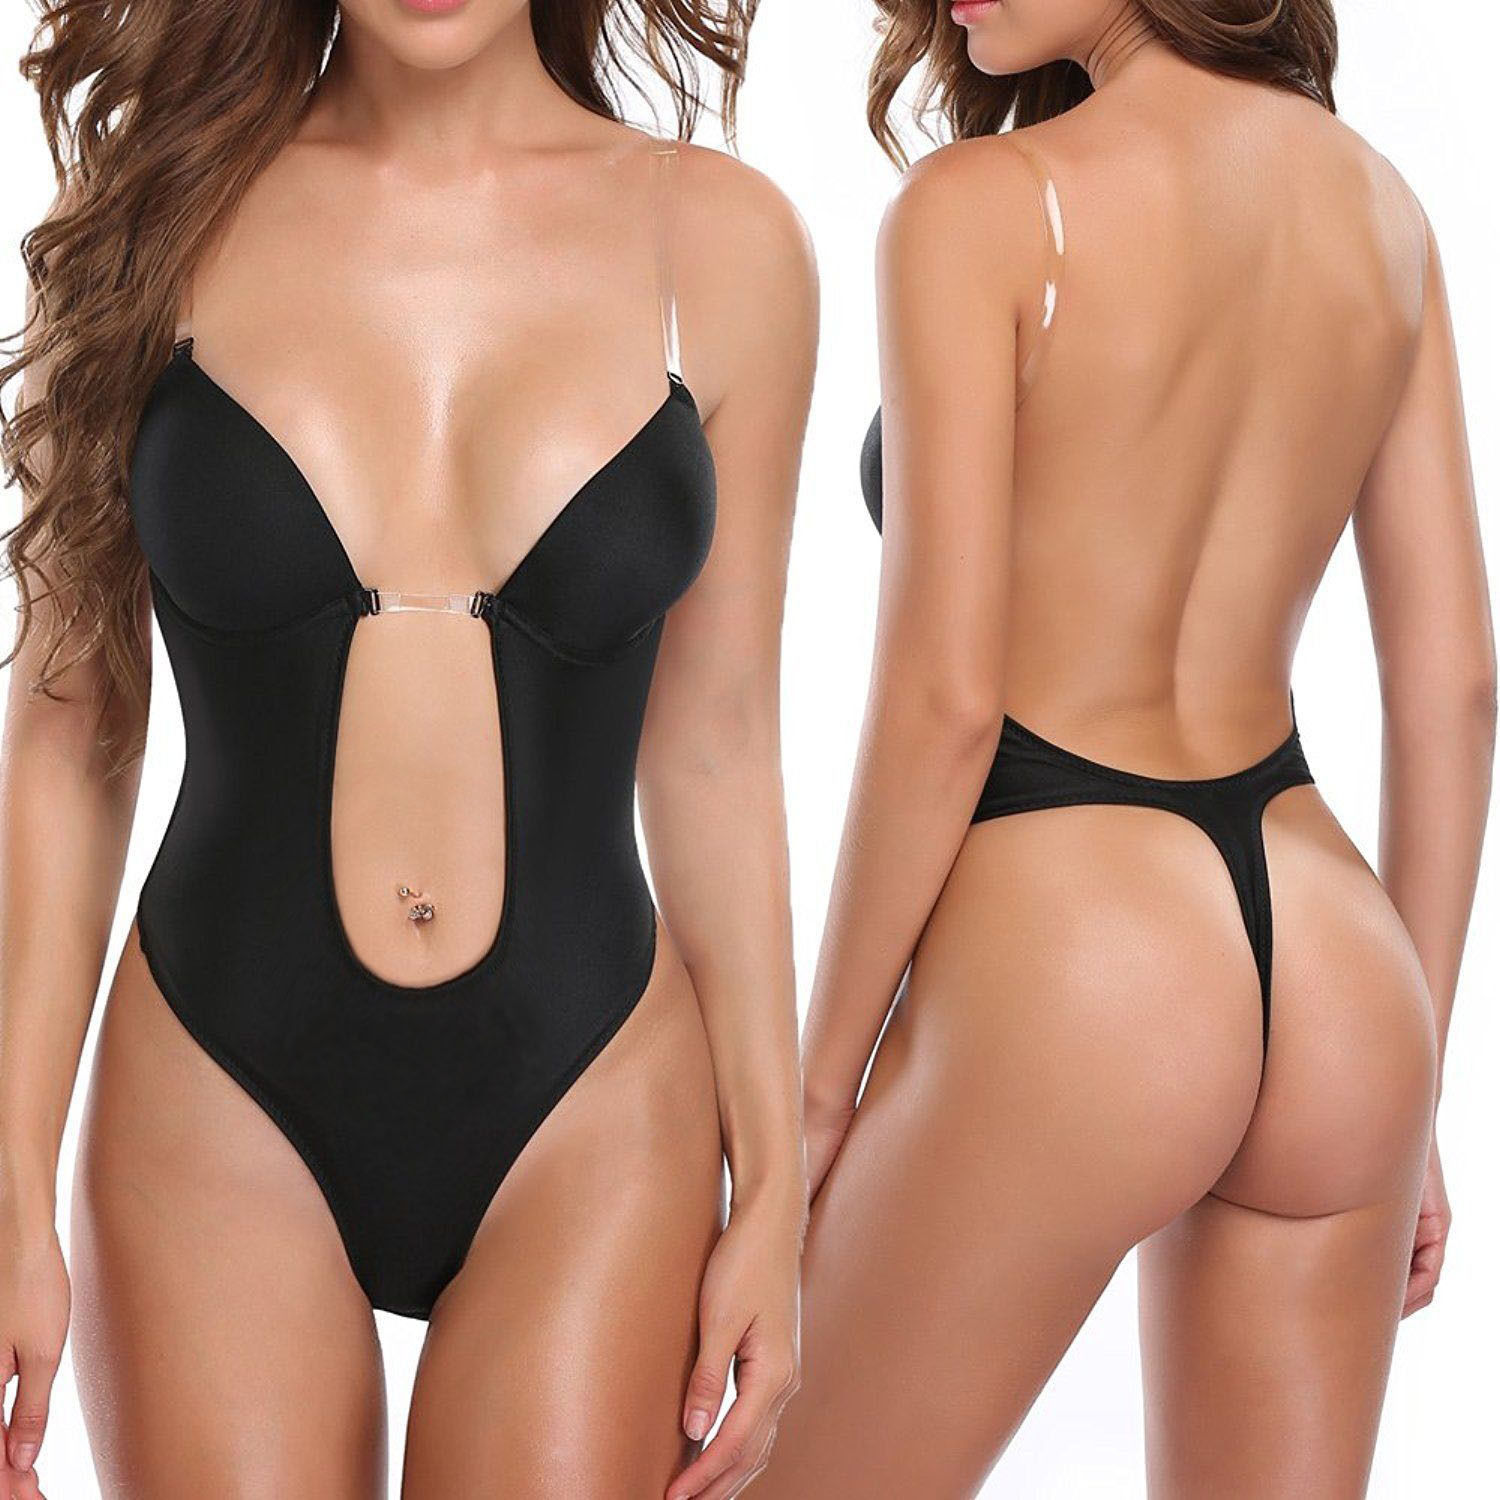 02bbcdb657 S l1600. S l1600. Previous. CONVERTIBLE CLEAR STRAP ULTRA LOW BACKLESS PUSH  UP FULL BODY SHAPER BIKINI THONG